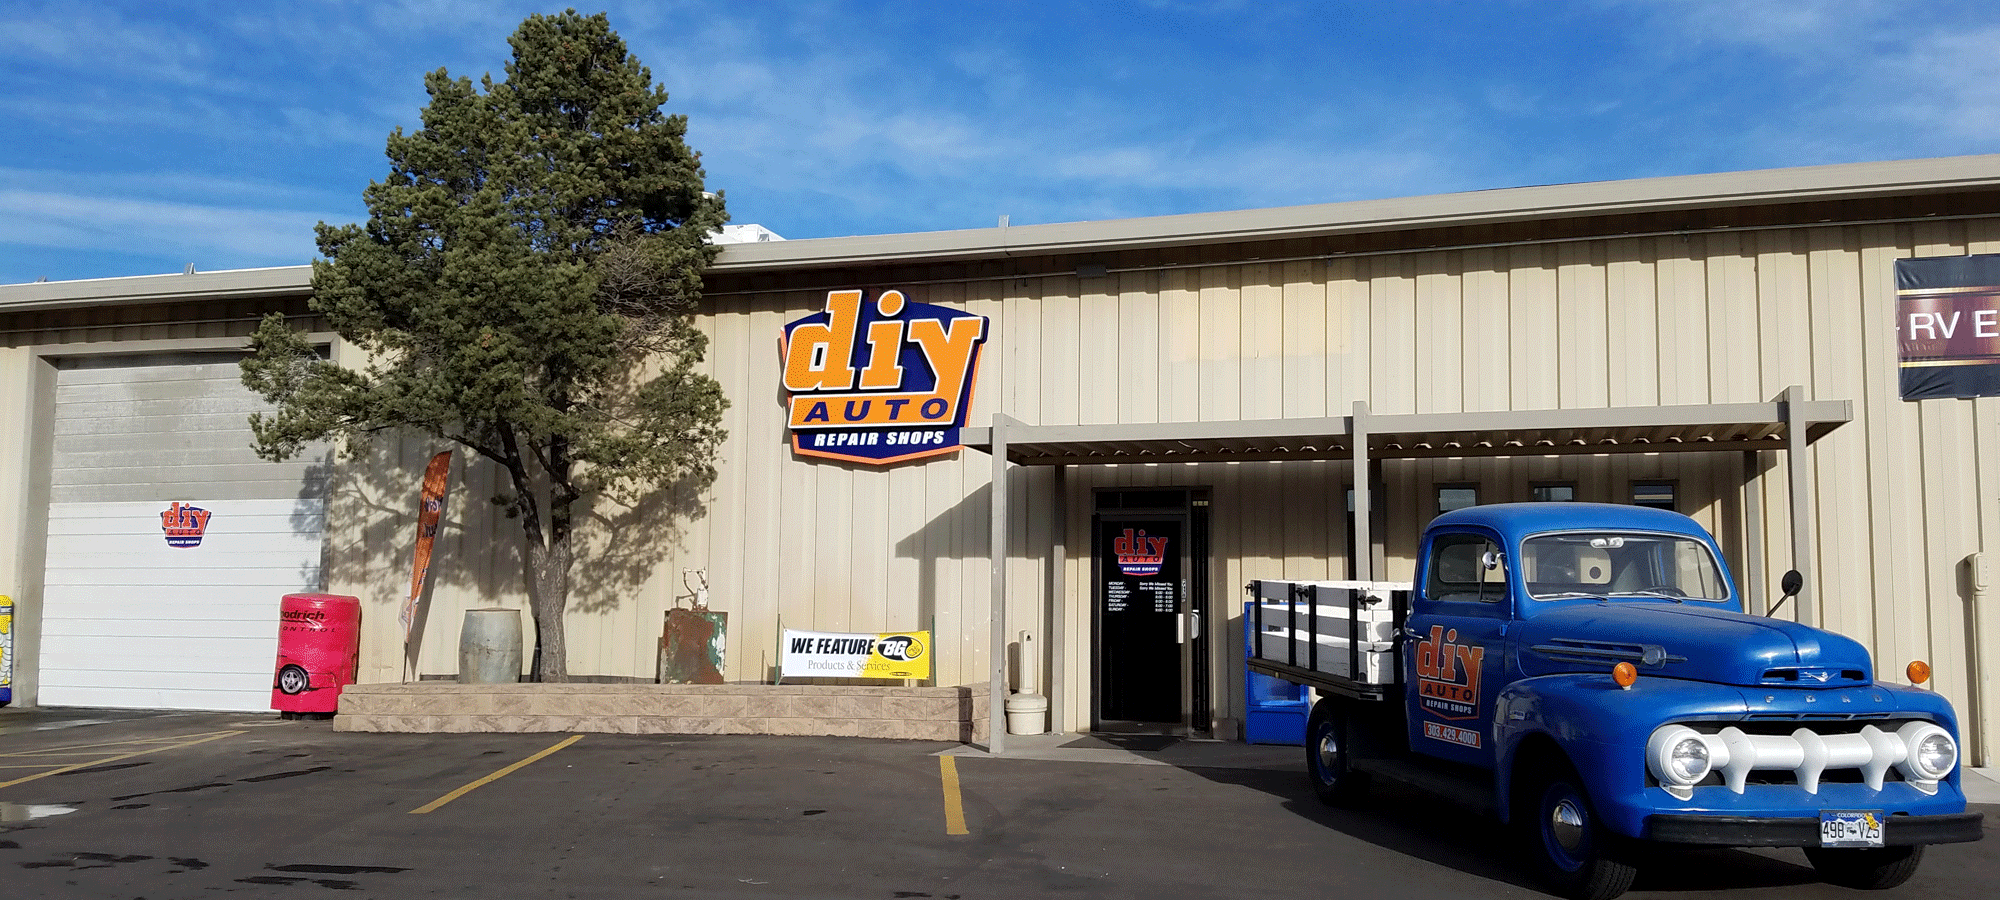 Diy auto repair shops equipped self service garage bays diy auto repair bays for rent solutioingenieria Image collections